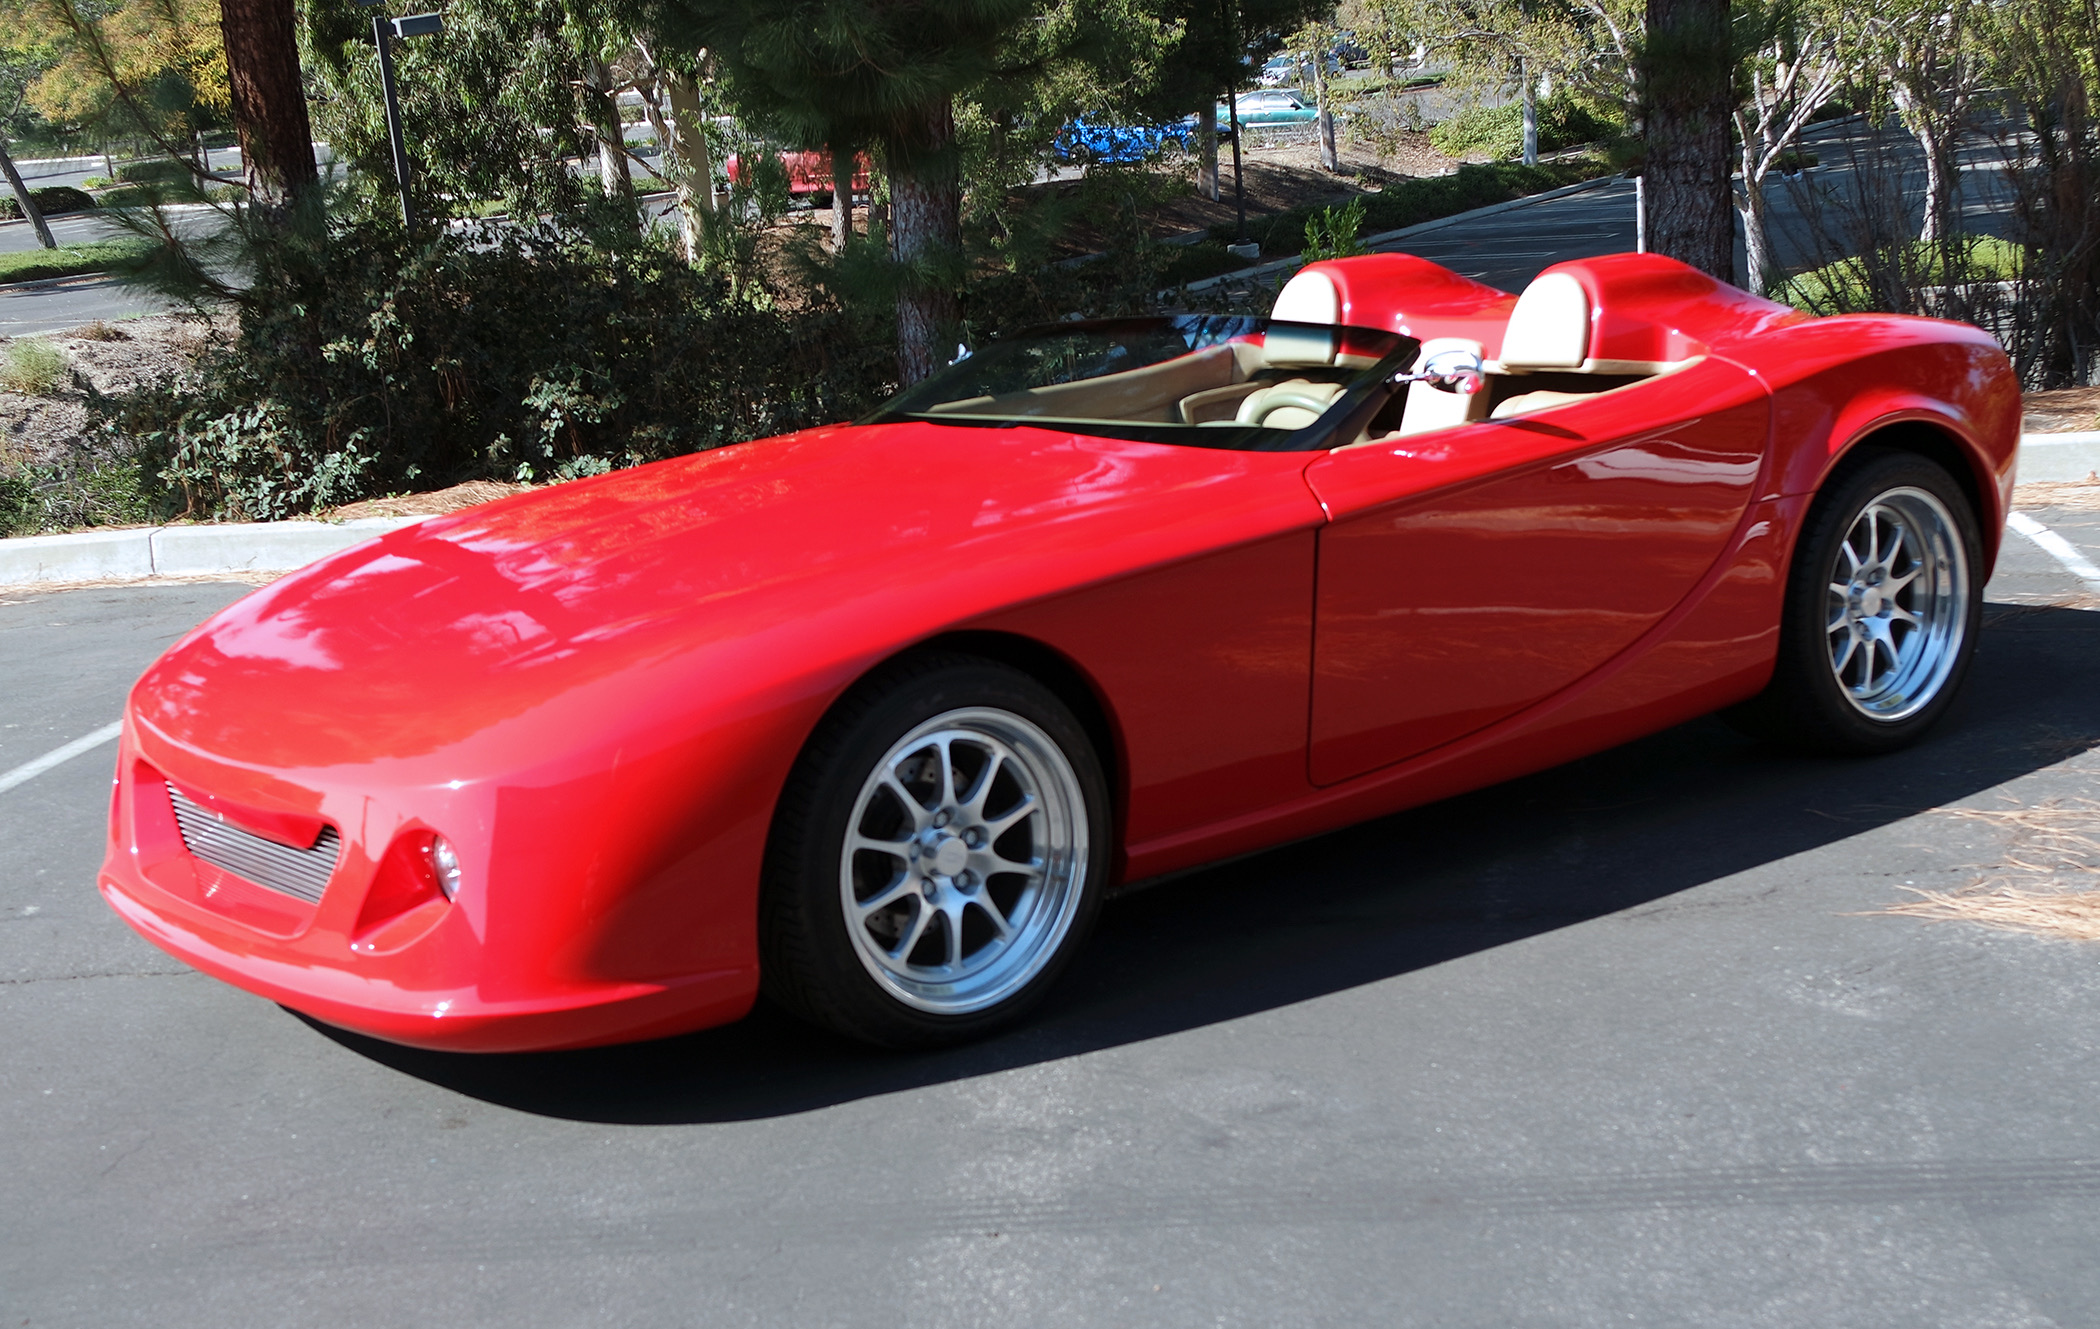 leake auctions, Digital destiny: Leake Auctions eager to greet younger, tech-savvy audience, ClassicCars.com Journal